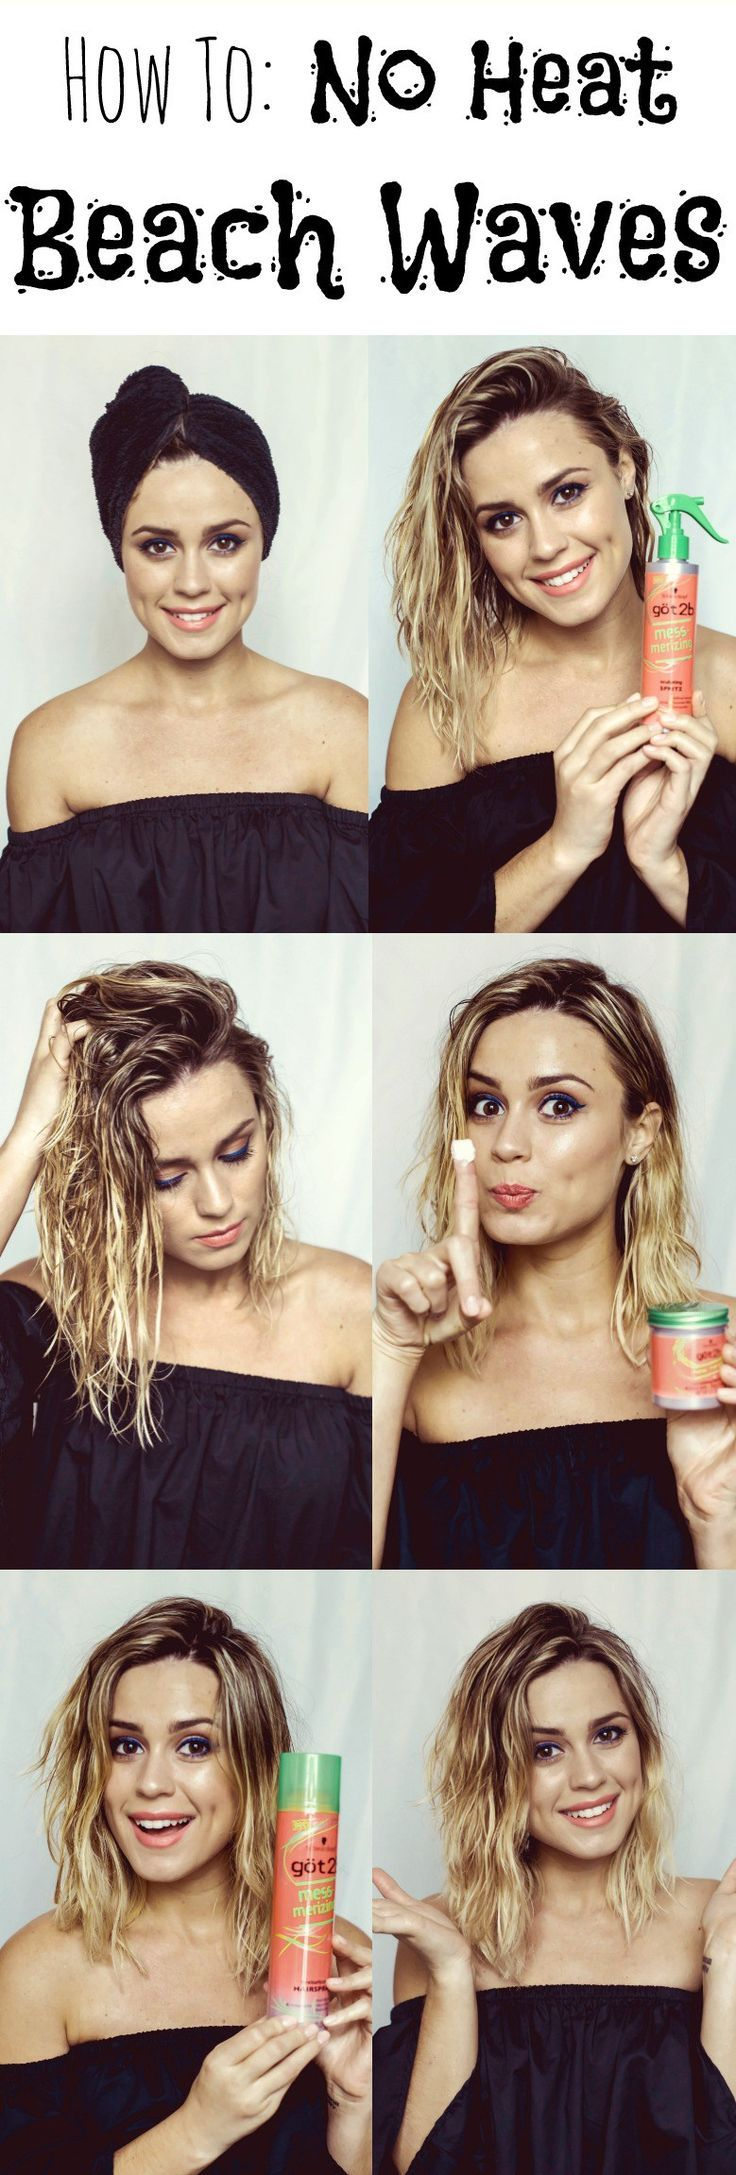 How to: No Heat Beach Waves Tutorial • Uptown with Elly Brown: